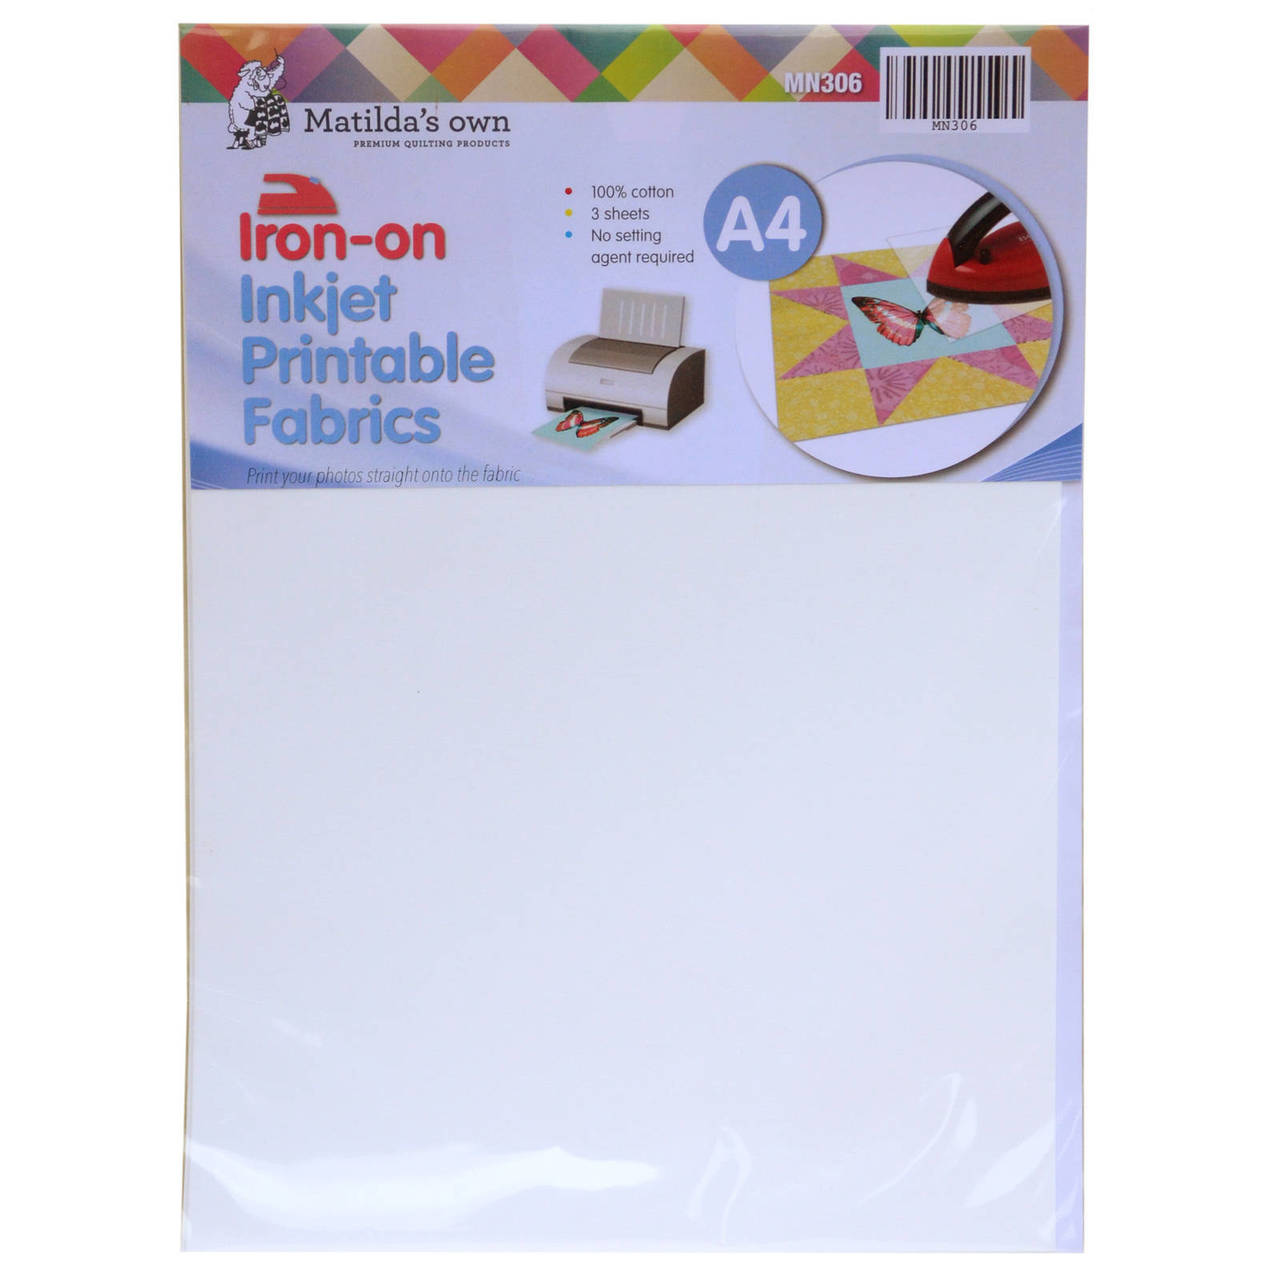 photo about Printable Fabric Paper referred to as Iron Upon Inkjet Material A4 3 Sheets 210x297mm Matildas Personal